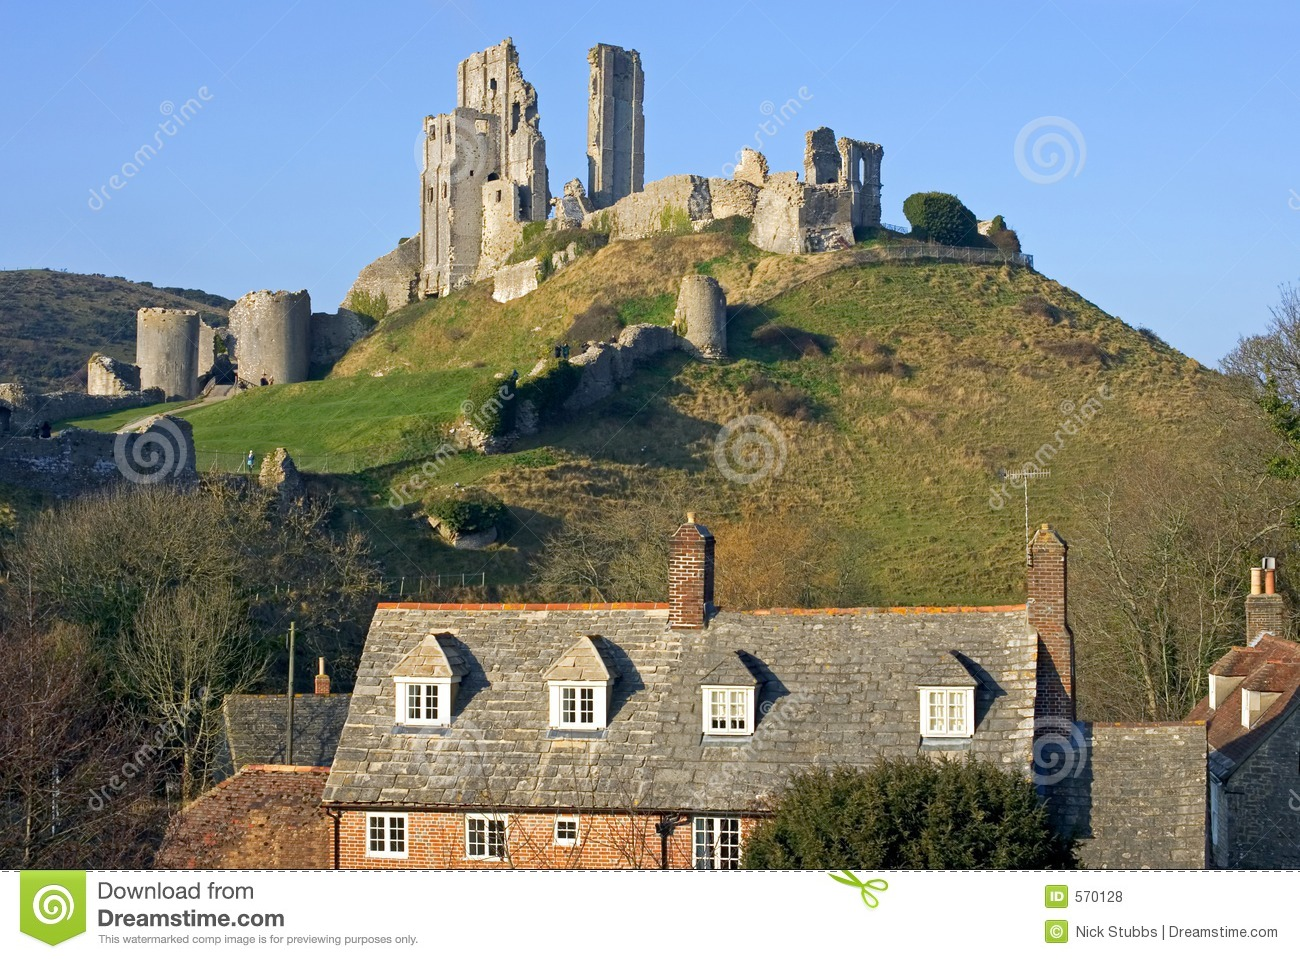 Corfe Castle, in Swanage, Dorset, Southern England